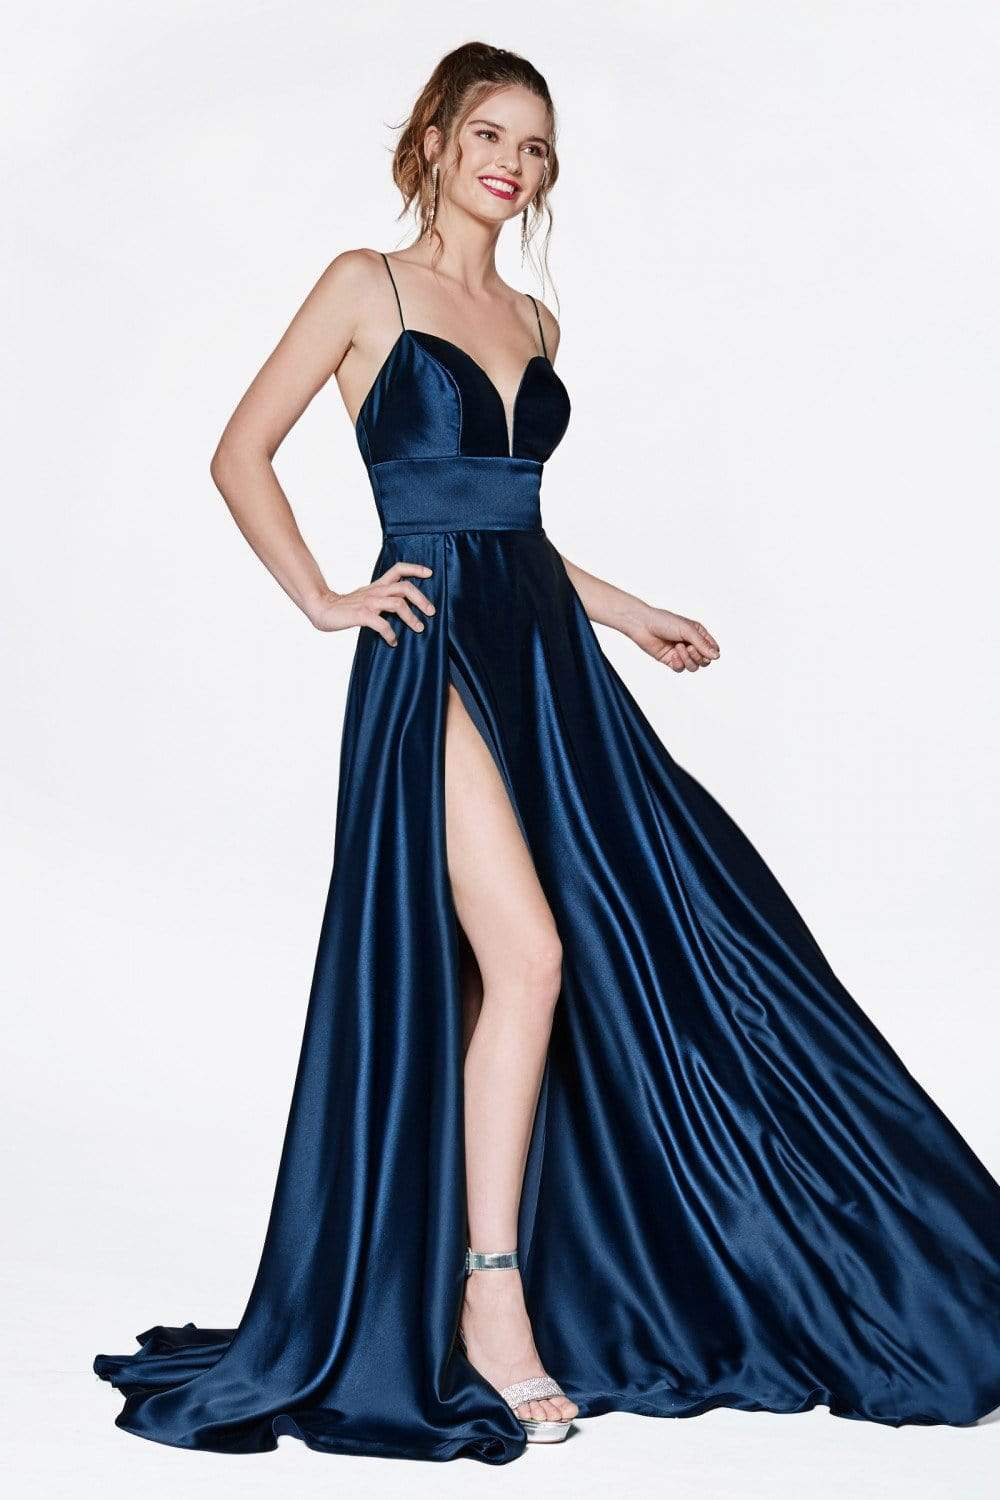 Cinderella Divine - CJ523 Sweetheart Neckline High Slit Satin Gown Prom Dresses 4 / Navy